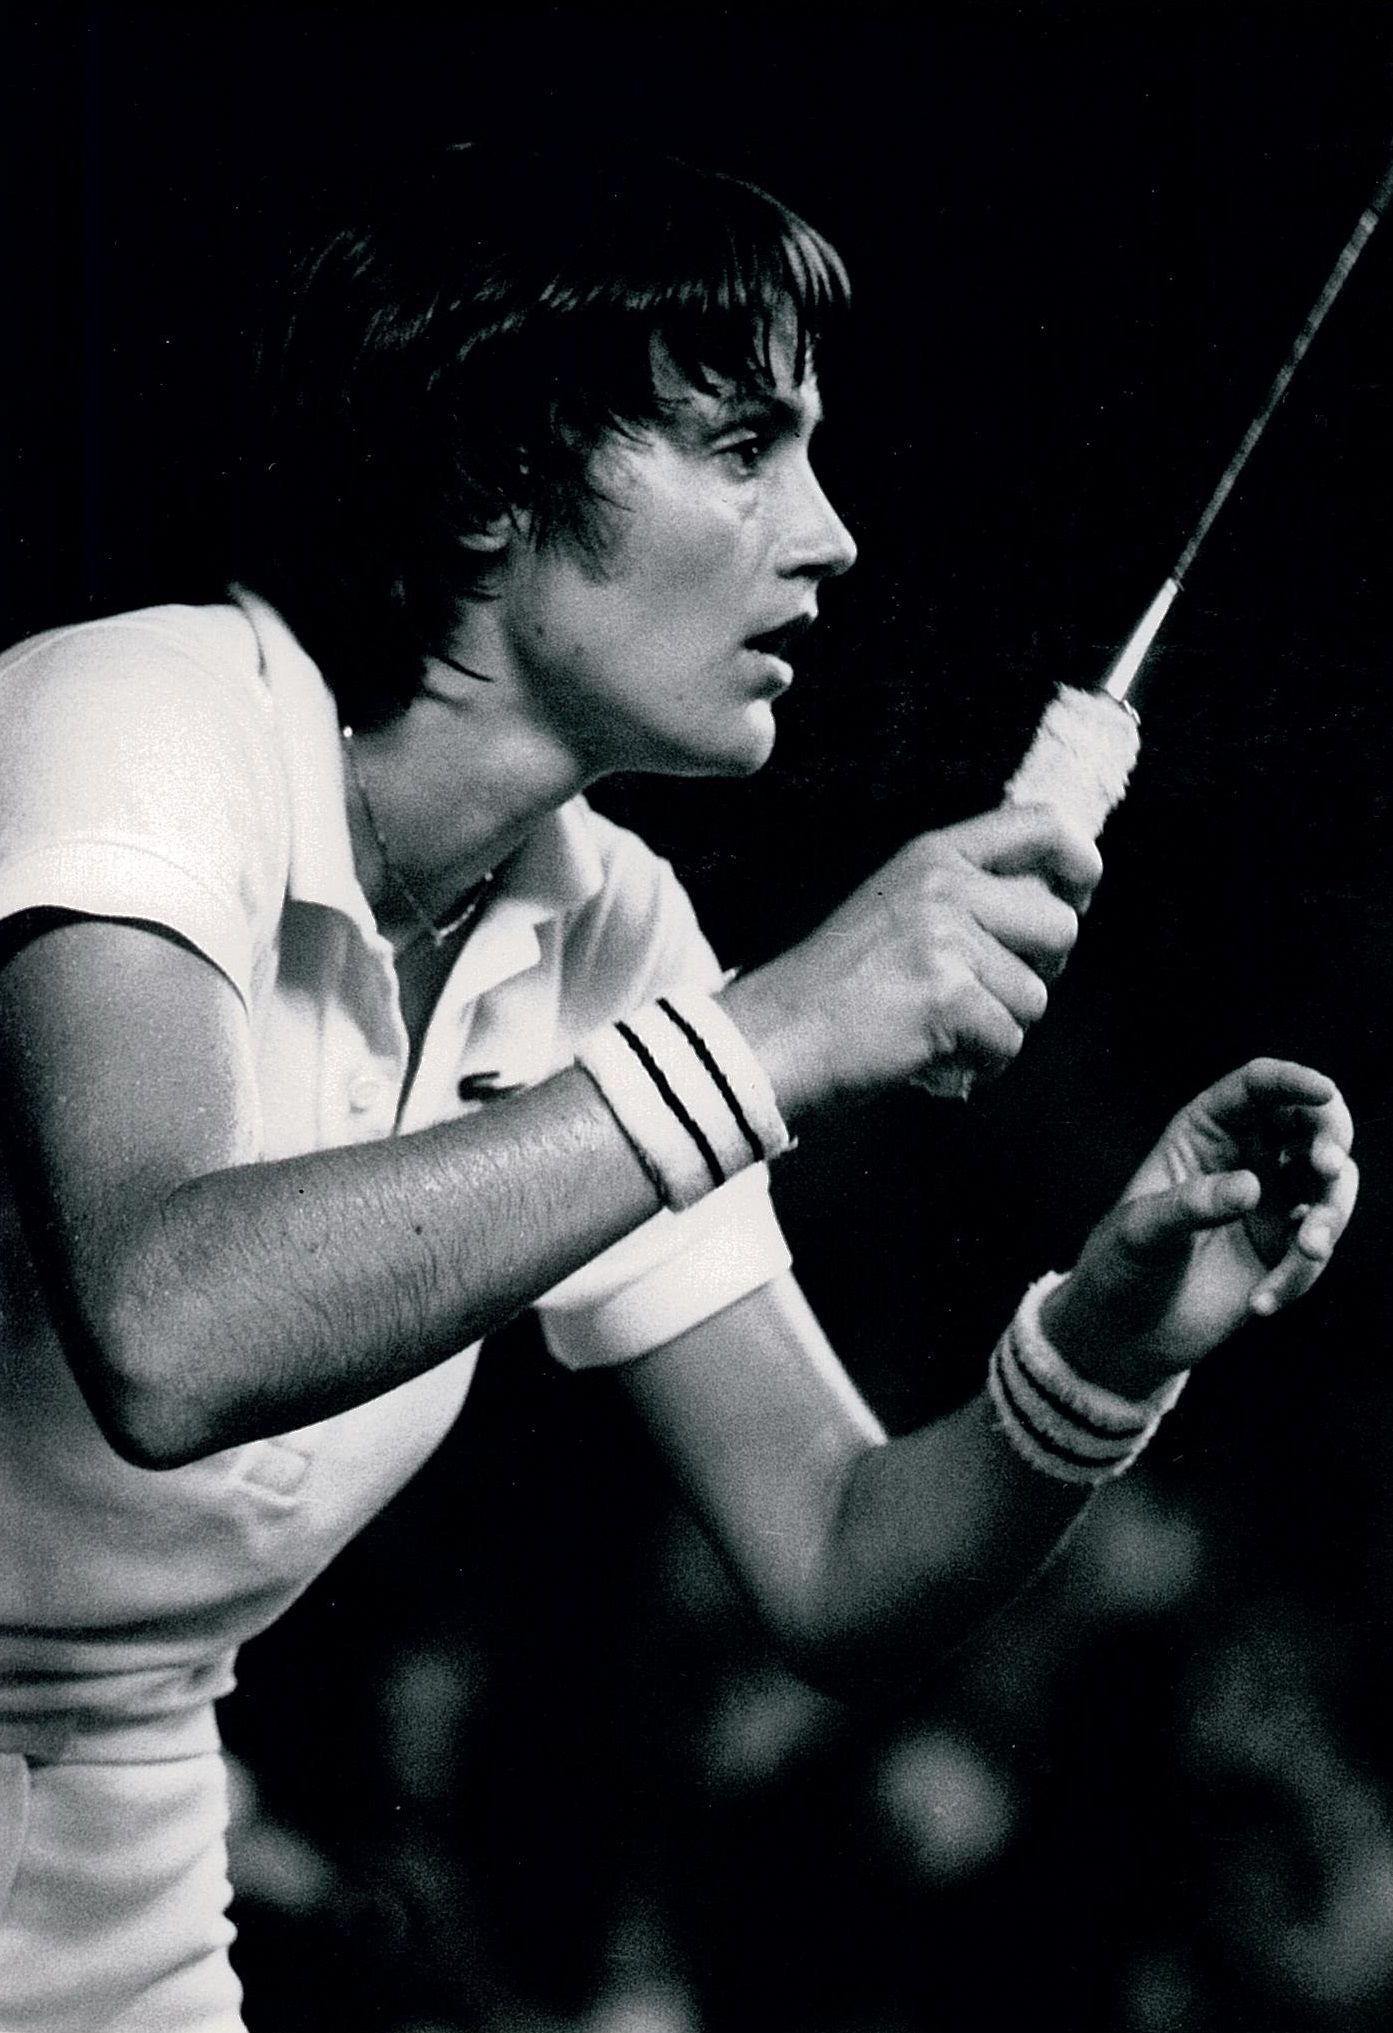 A picture of concentration... lene koppen at 2nd w cships jakarta 1980 - pic by louis ross